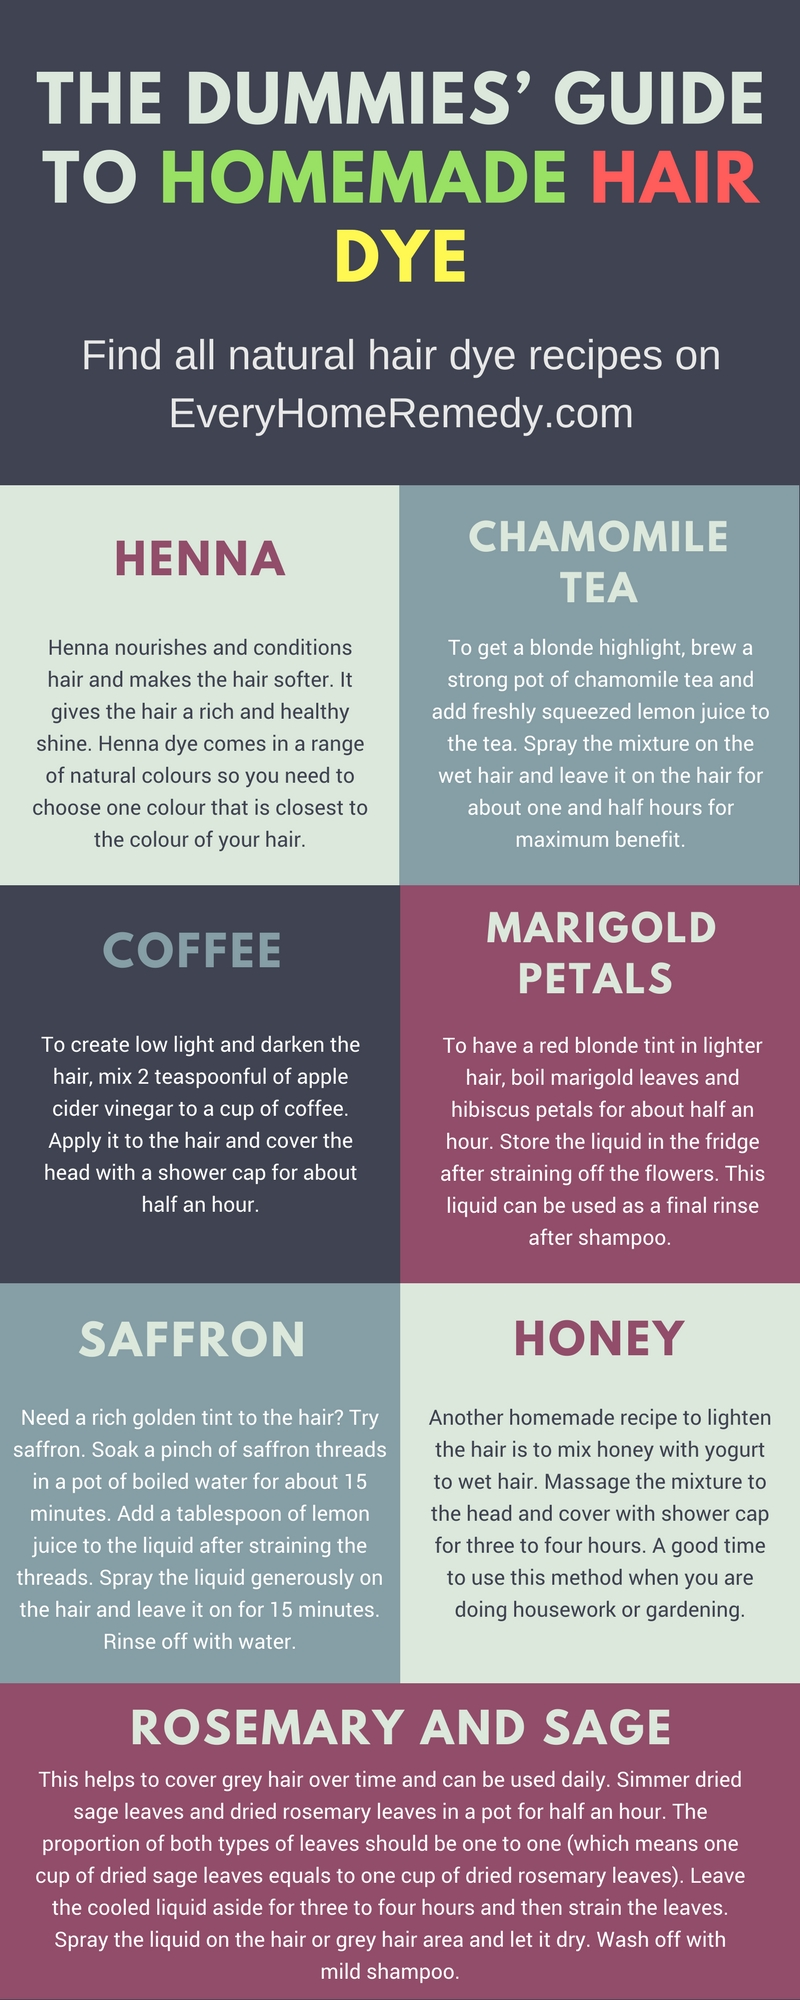 All natural ways to color your hair - with ingredients and recipes for each color